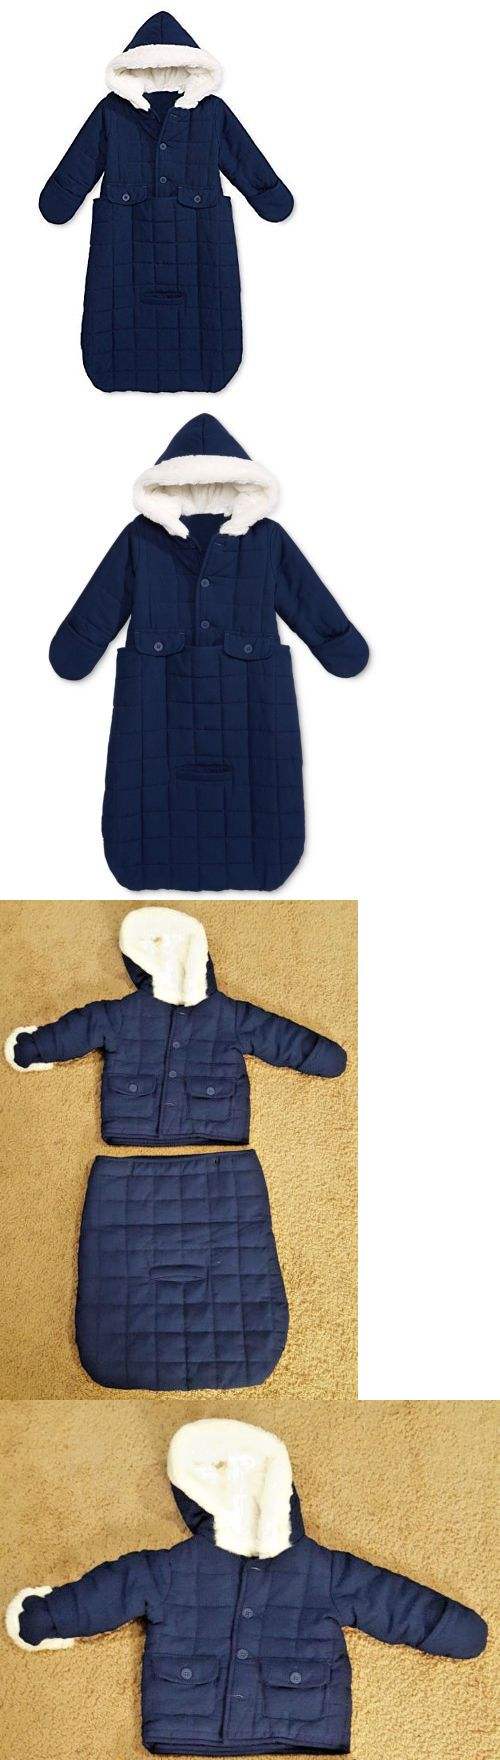 341a214ad47f Other Newborn-5T Girls Clothes 147221  First Impressions Baby Boys Or Baby  Girls Jacket Snowbag With Faux Fur Trim